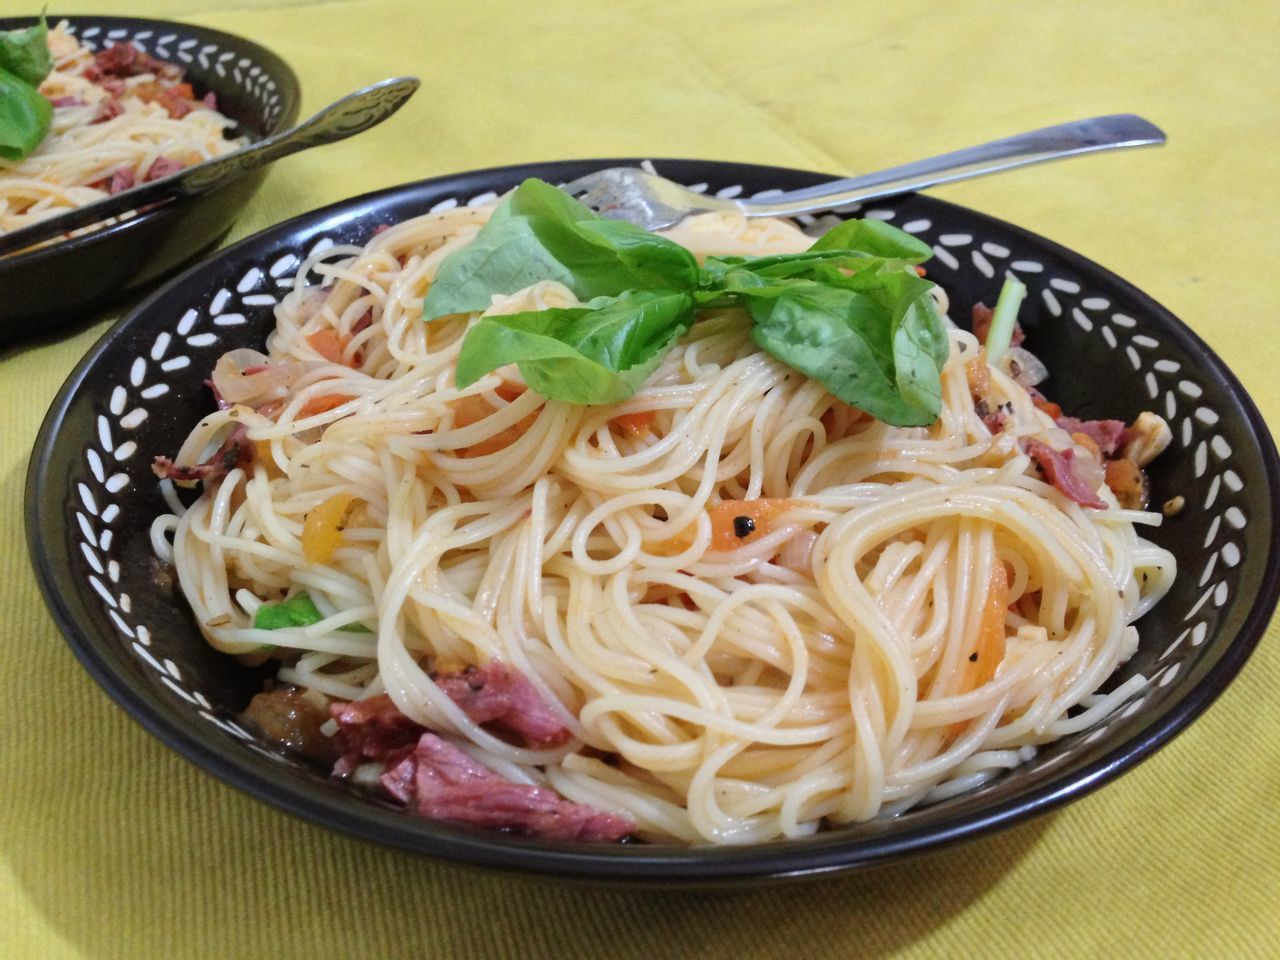 food and drink, noodles, food, indoors, bowl, freshness, healthy eating, no people, table, chopsticks, ready-to-eat, close-up, day